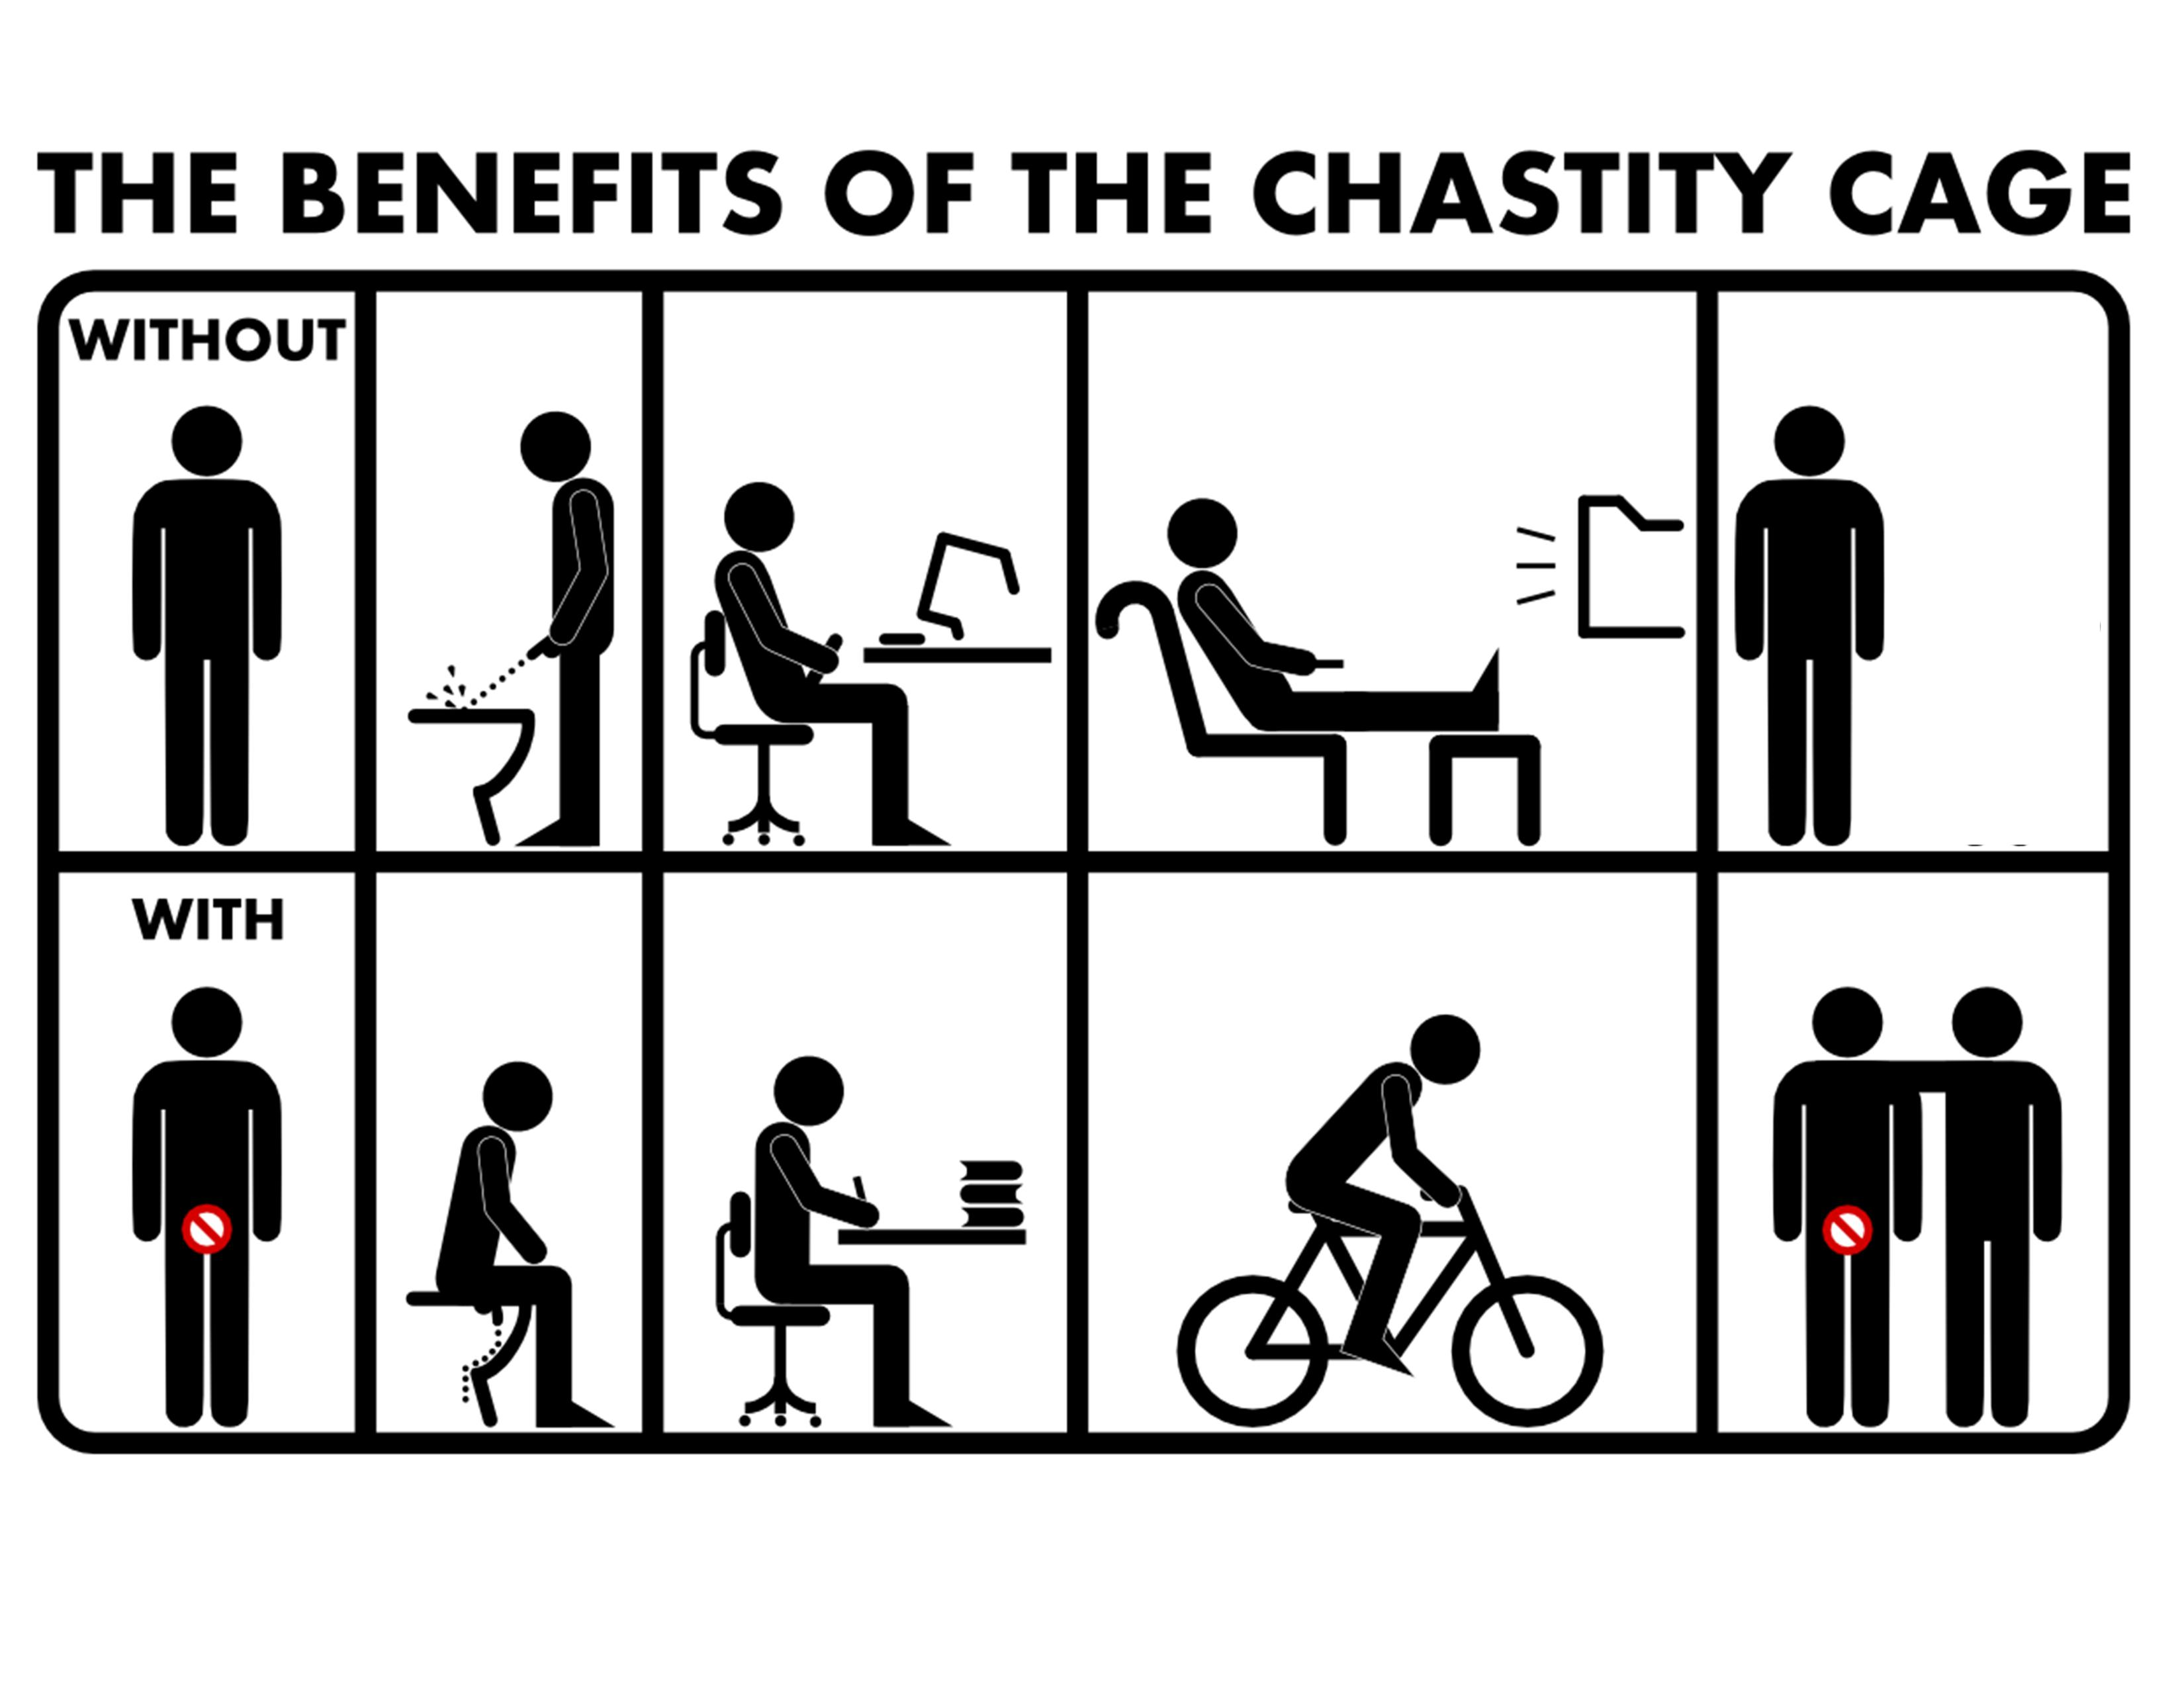 The benefits of a chastity cage